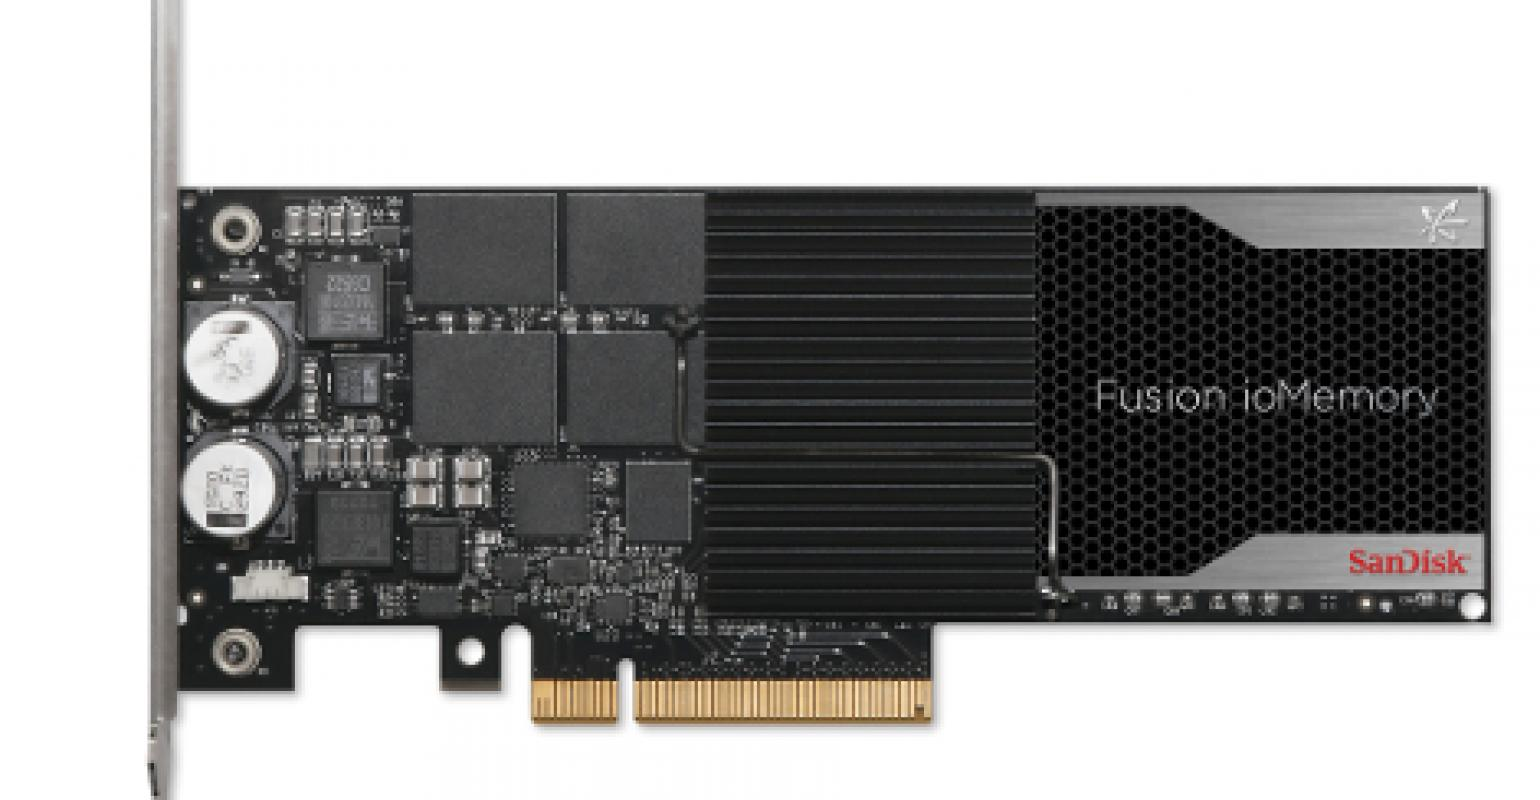 SanDisk: New Fusion-io PCIe Flash Cards Shrink Data Center